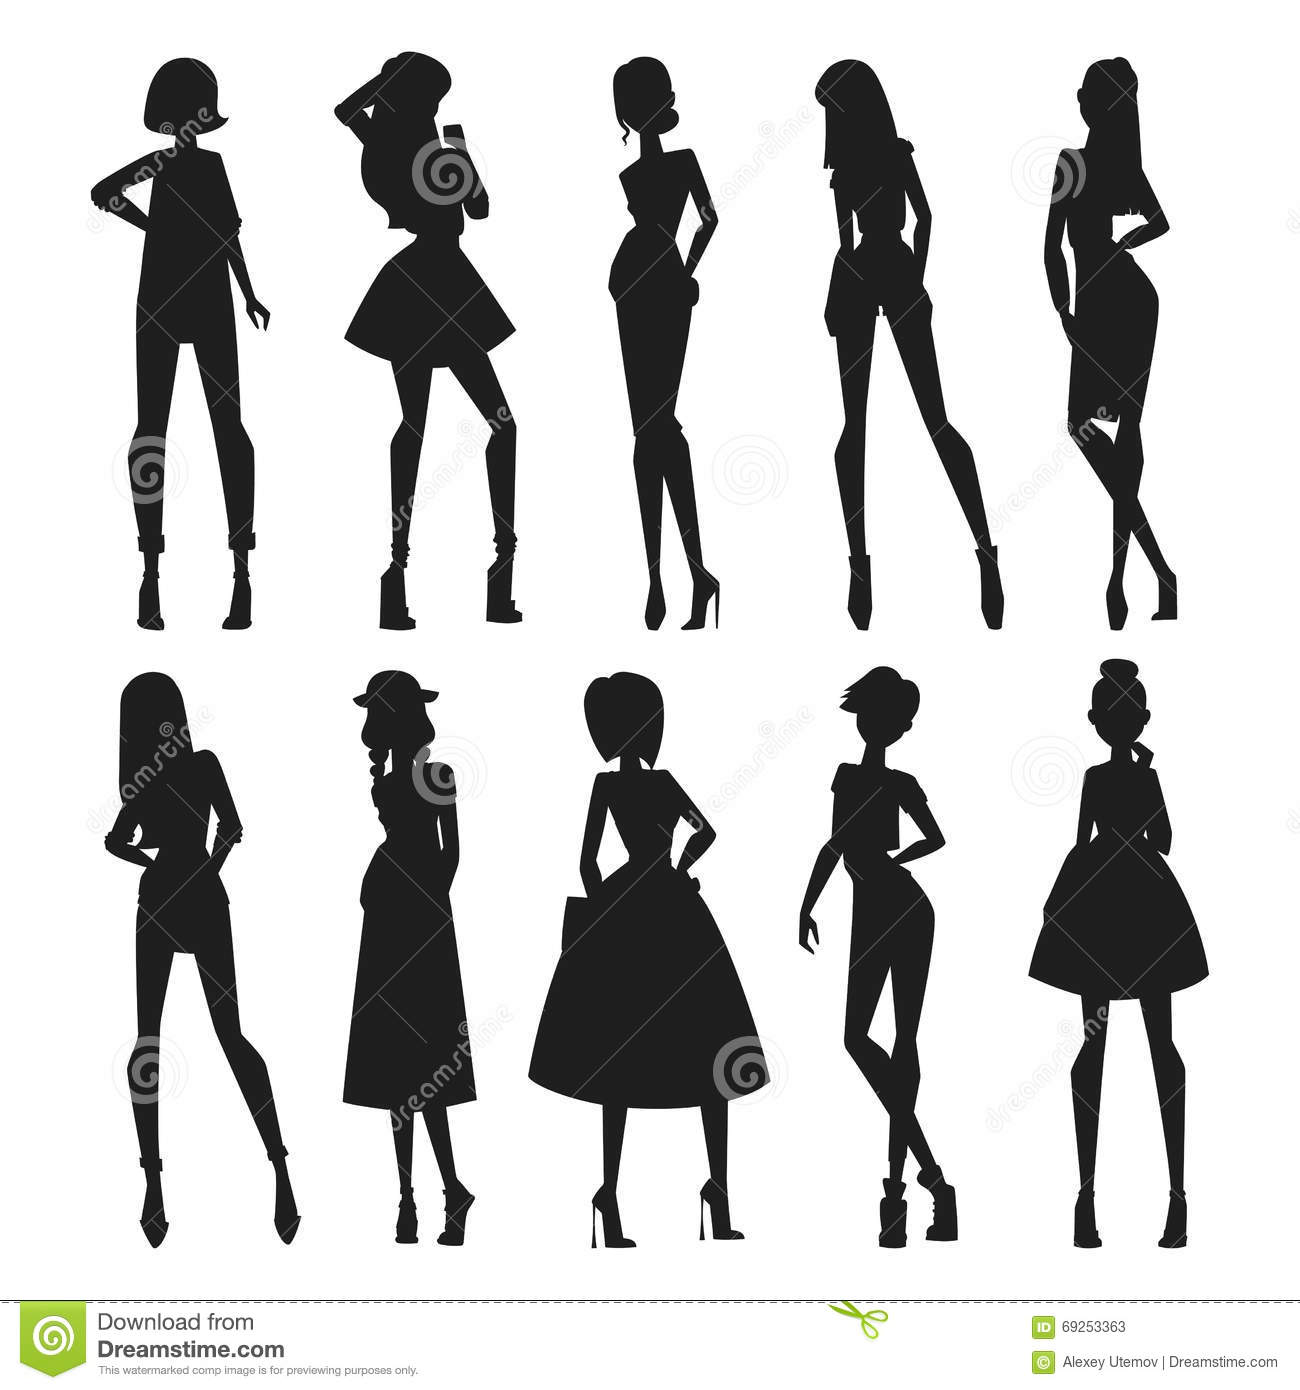 Fashion Abstract Vector Girls Looks Black Silhouette Stock